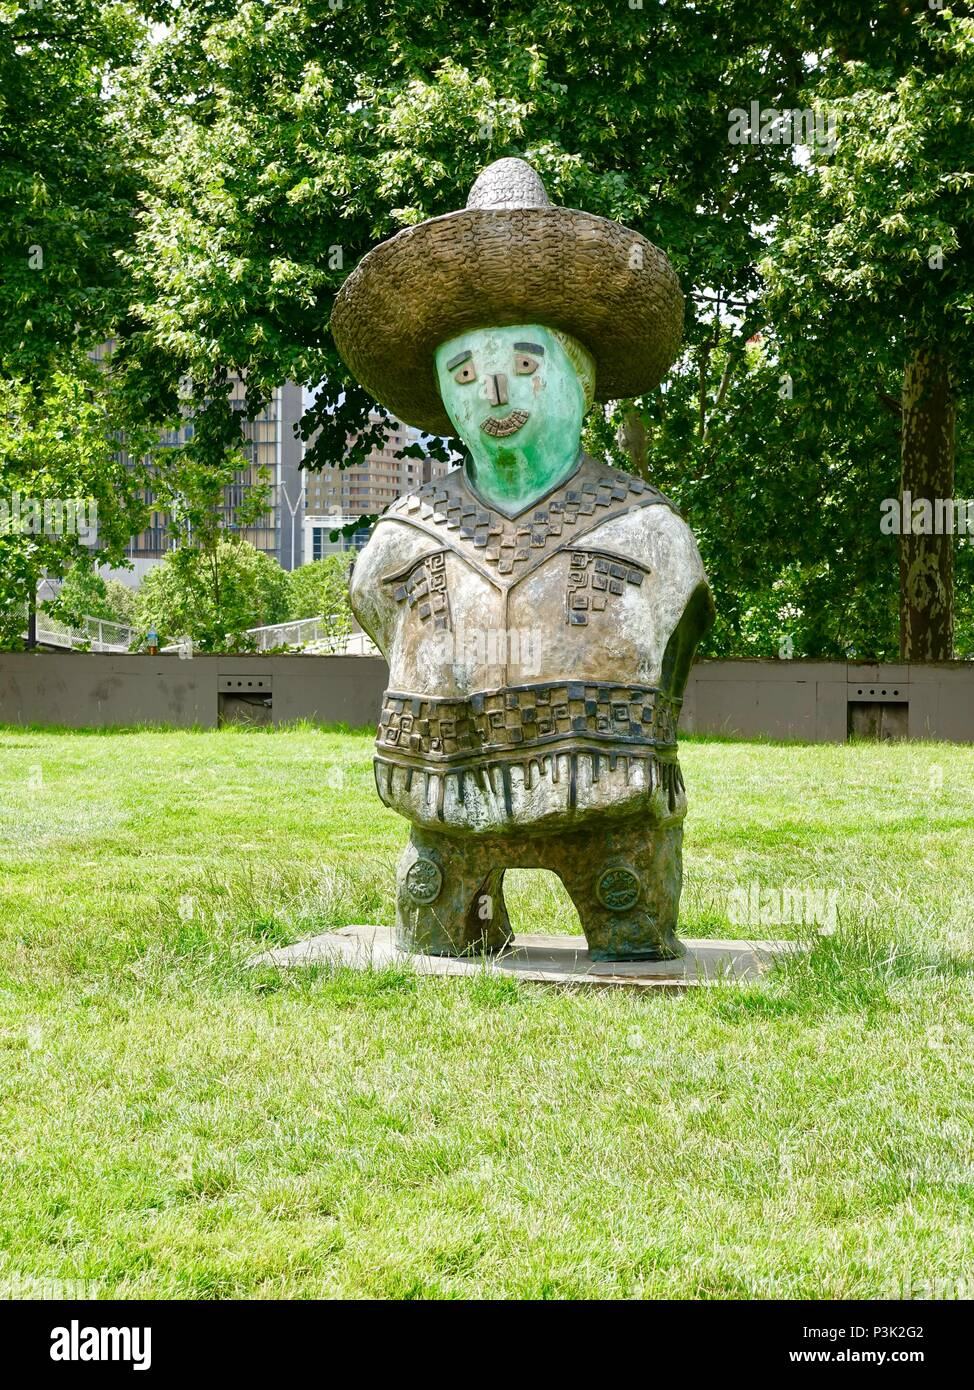 One of Rachid Khimoune's statues from the piece, 'Children of the World.' This one represents the country of Mexico. Bercy Park, Paris, France - Stock Image